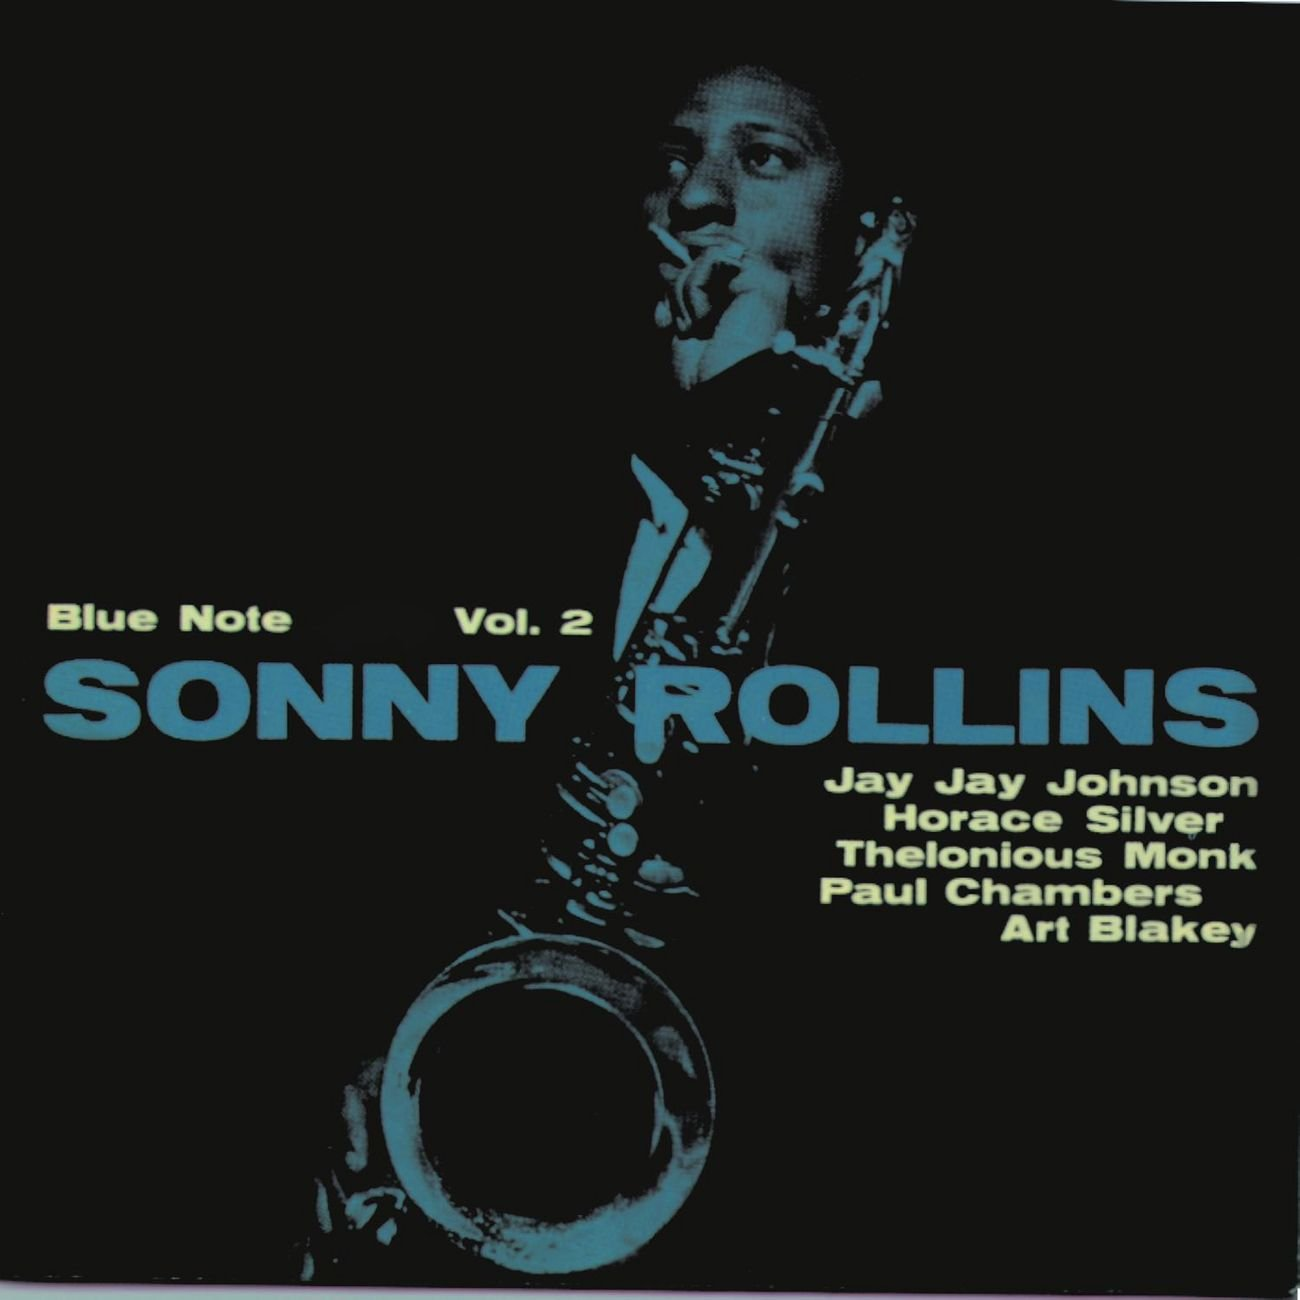 49a3ee3bf53 Sonny Rollins - Volume 2 - Amazon.com Music